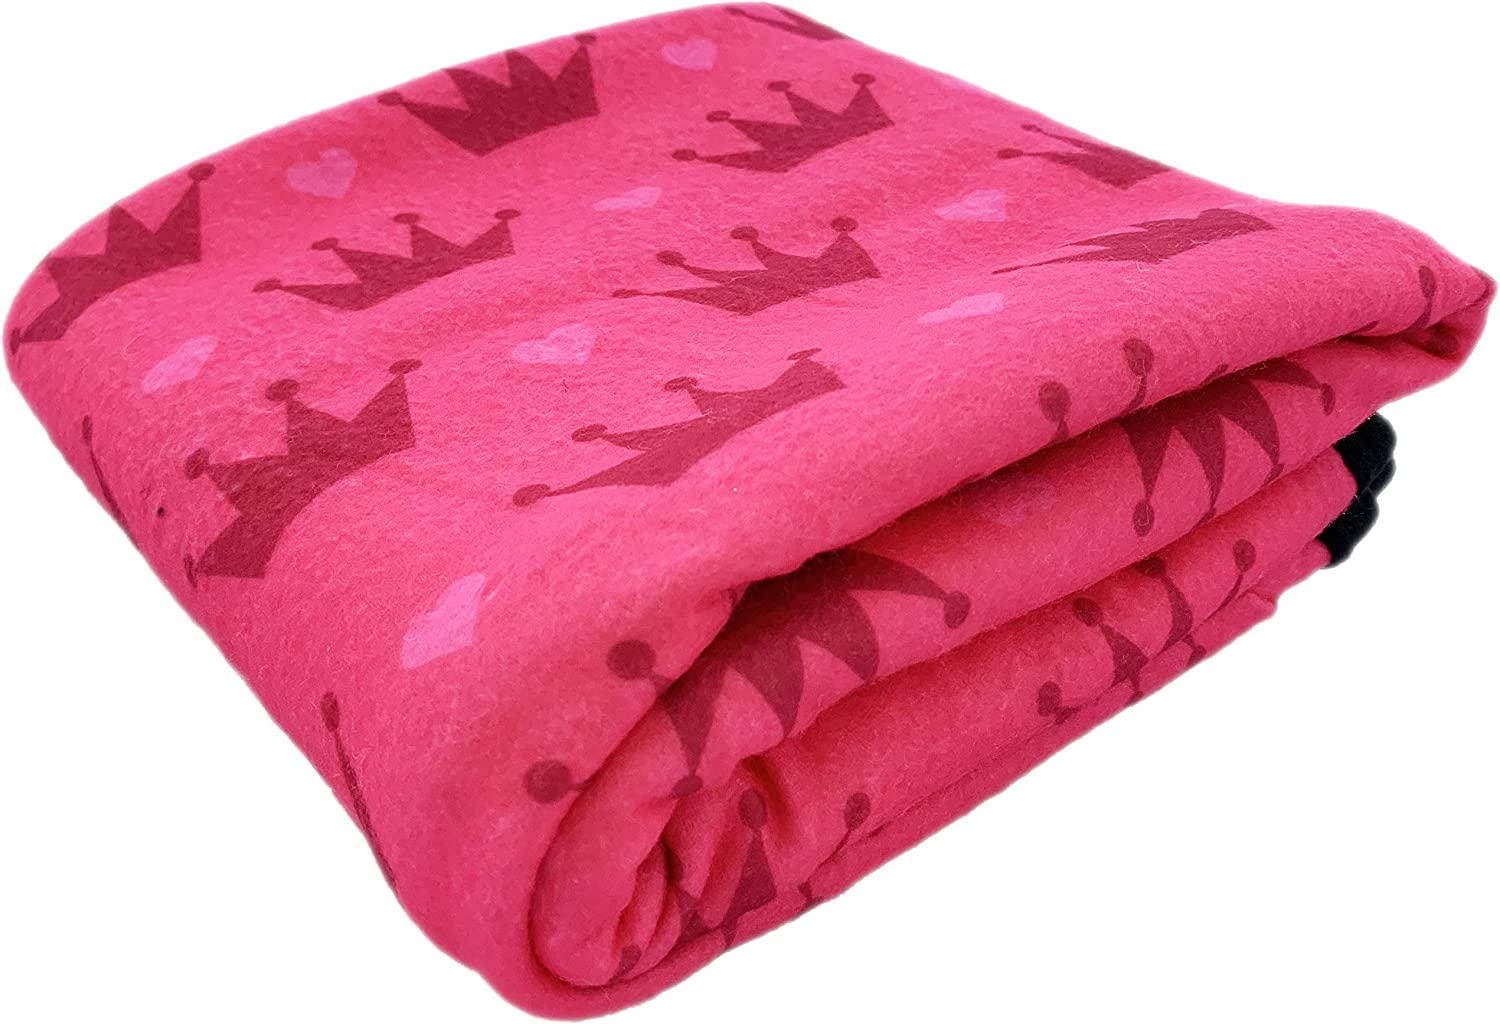 Dog Bed Blanket - Blankets for Large Dogs, Medium, Small (Even for Puppy!) Also a Great Cat Blanket - Cozy Bedding for Crate, Couch, Throw, Summer or Winter